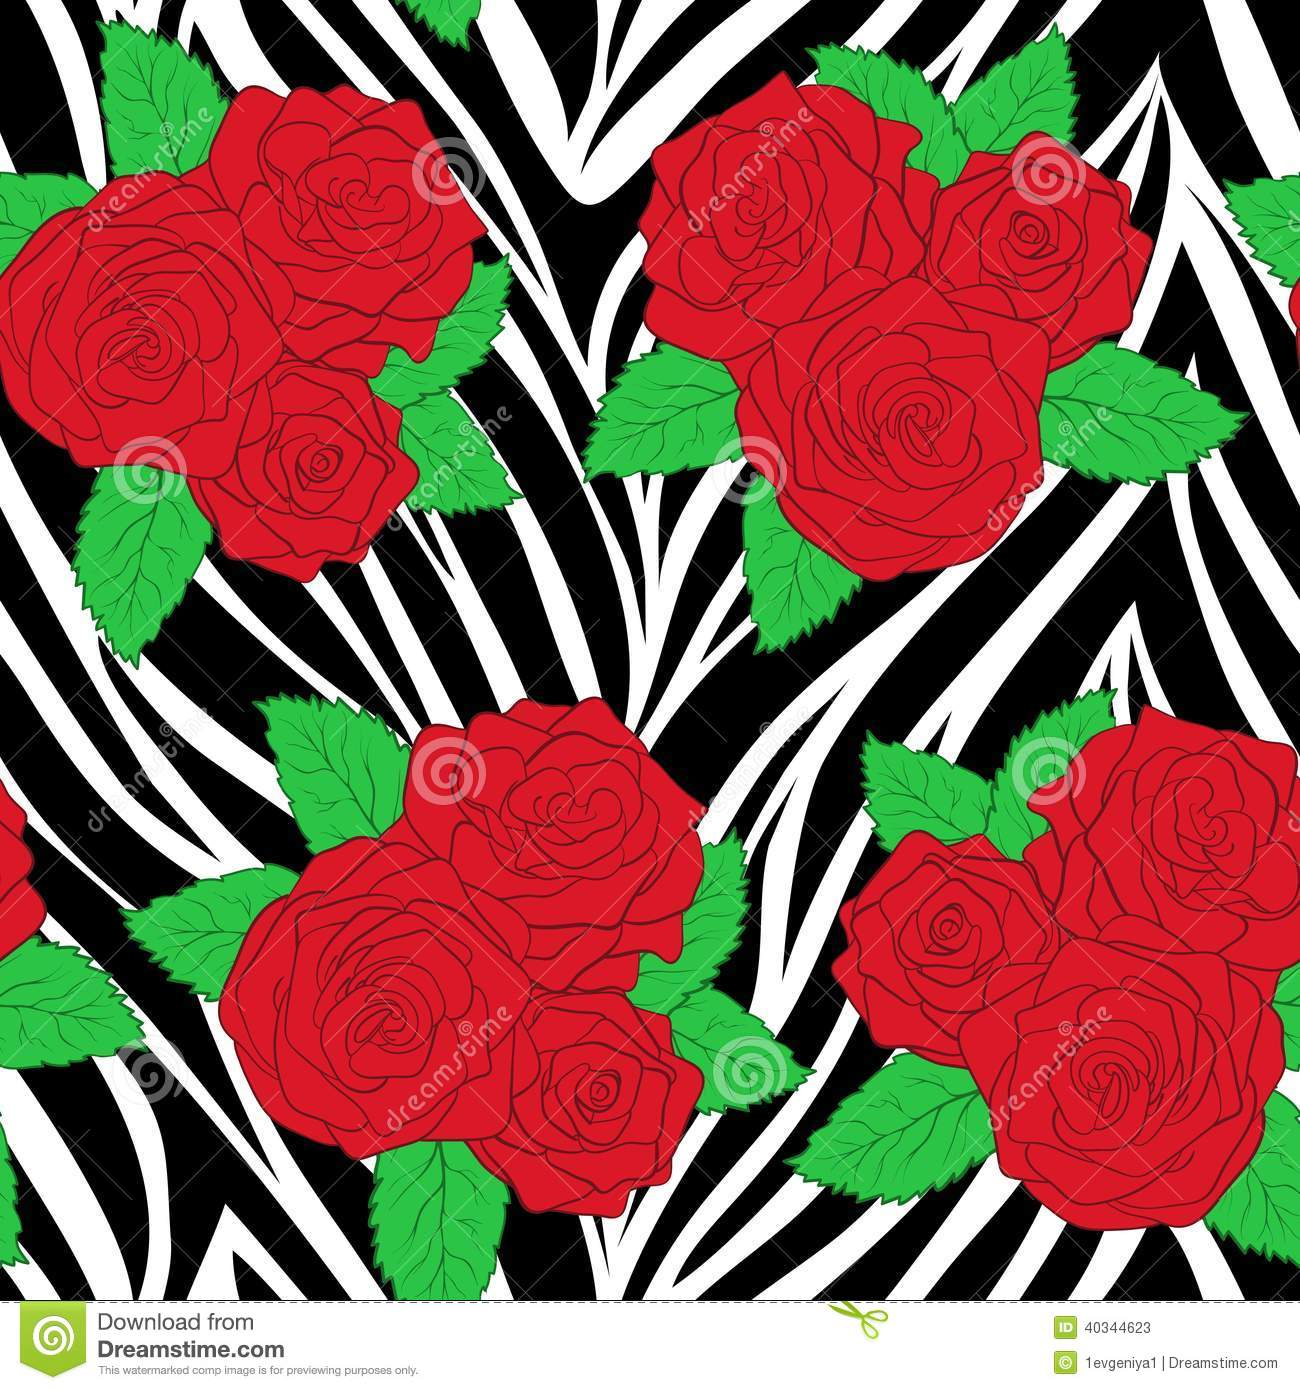 Bouquets Of Roses On Animal Zebra Abstract Print.ΠStock ...